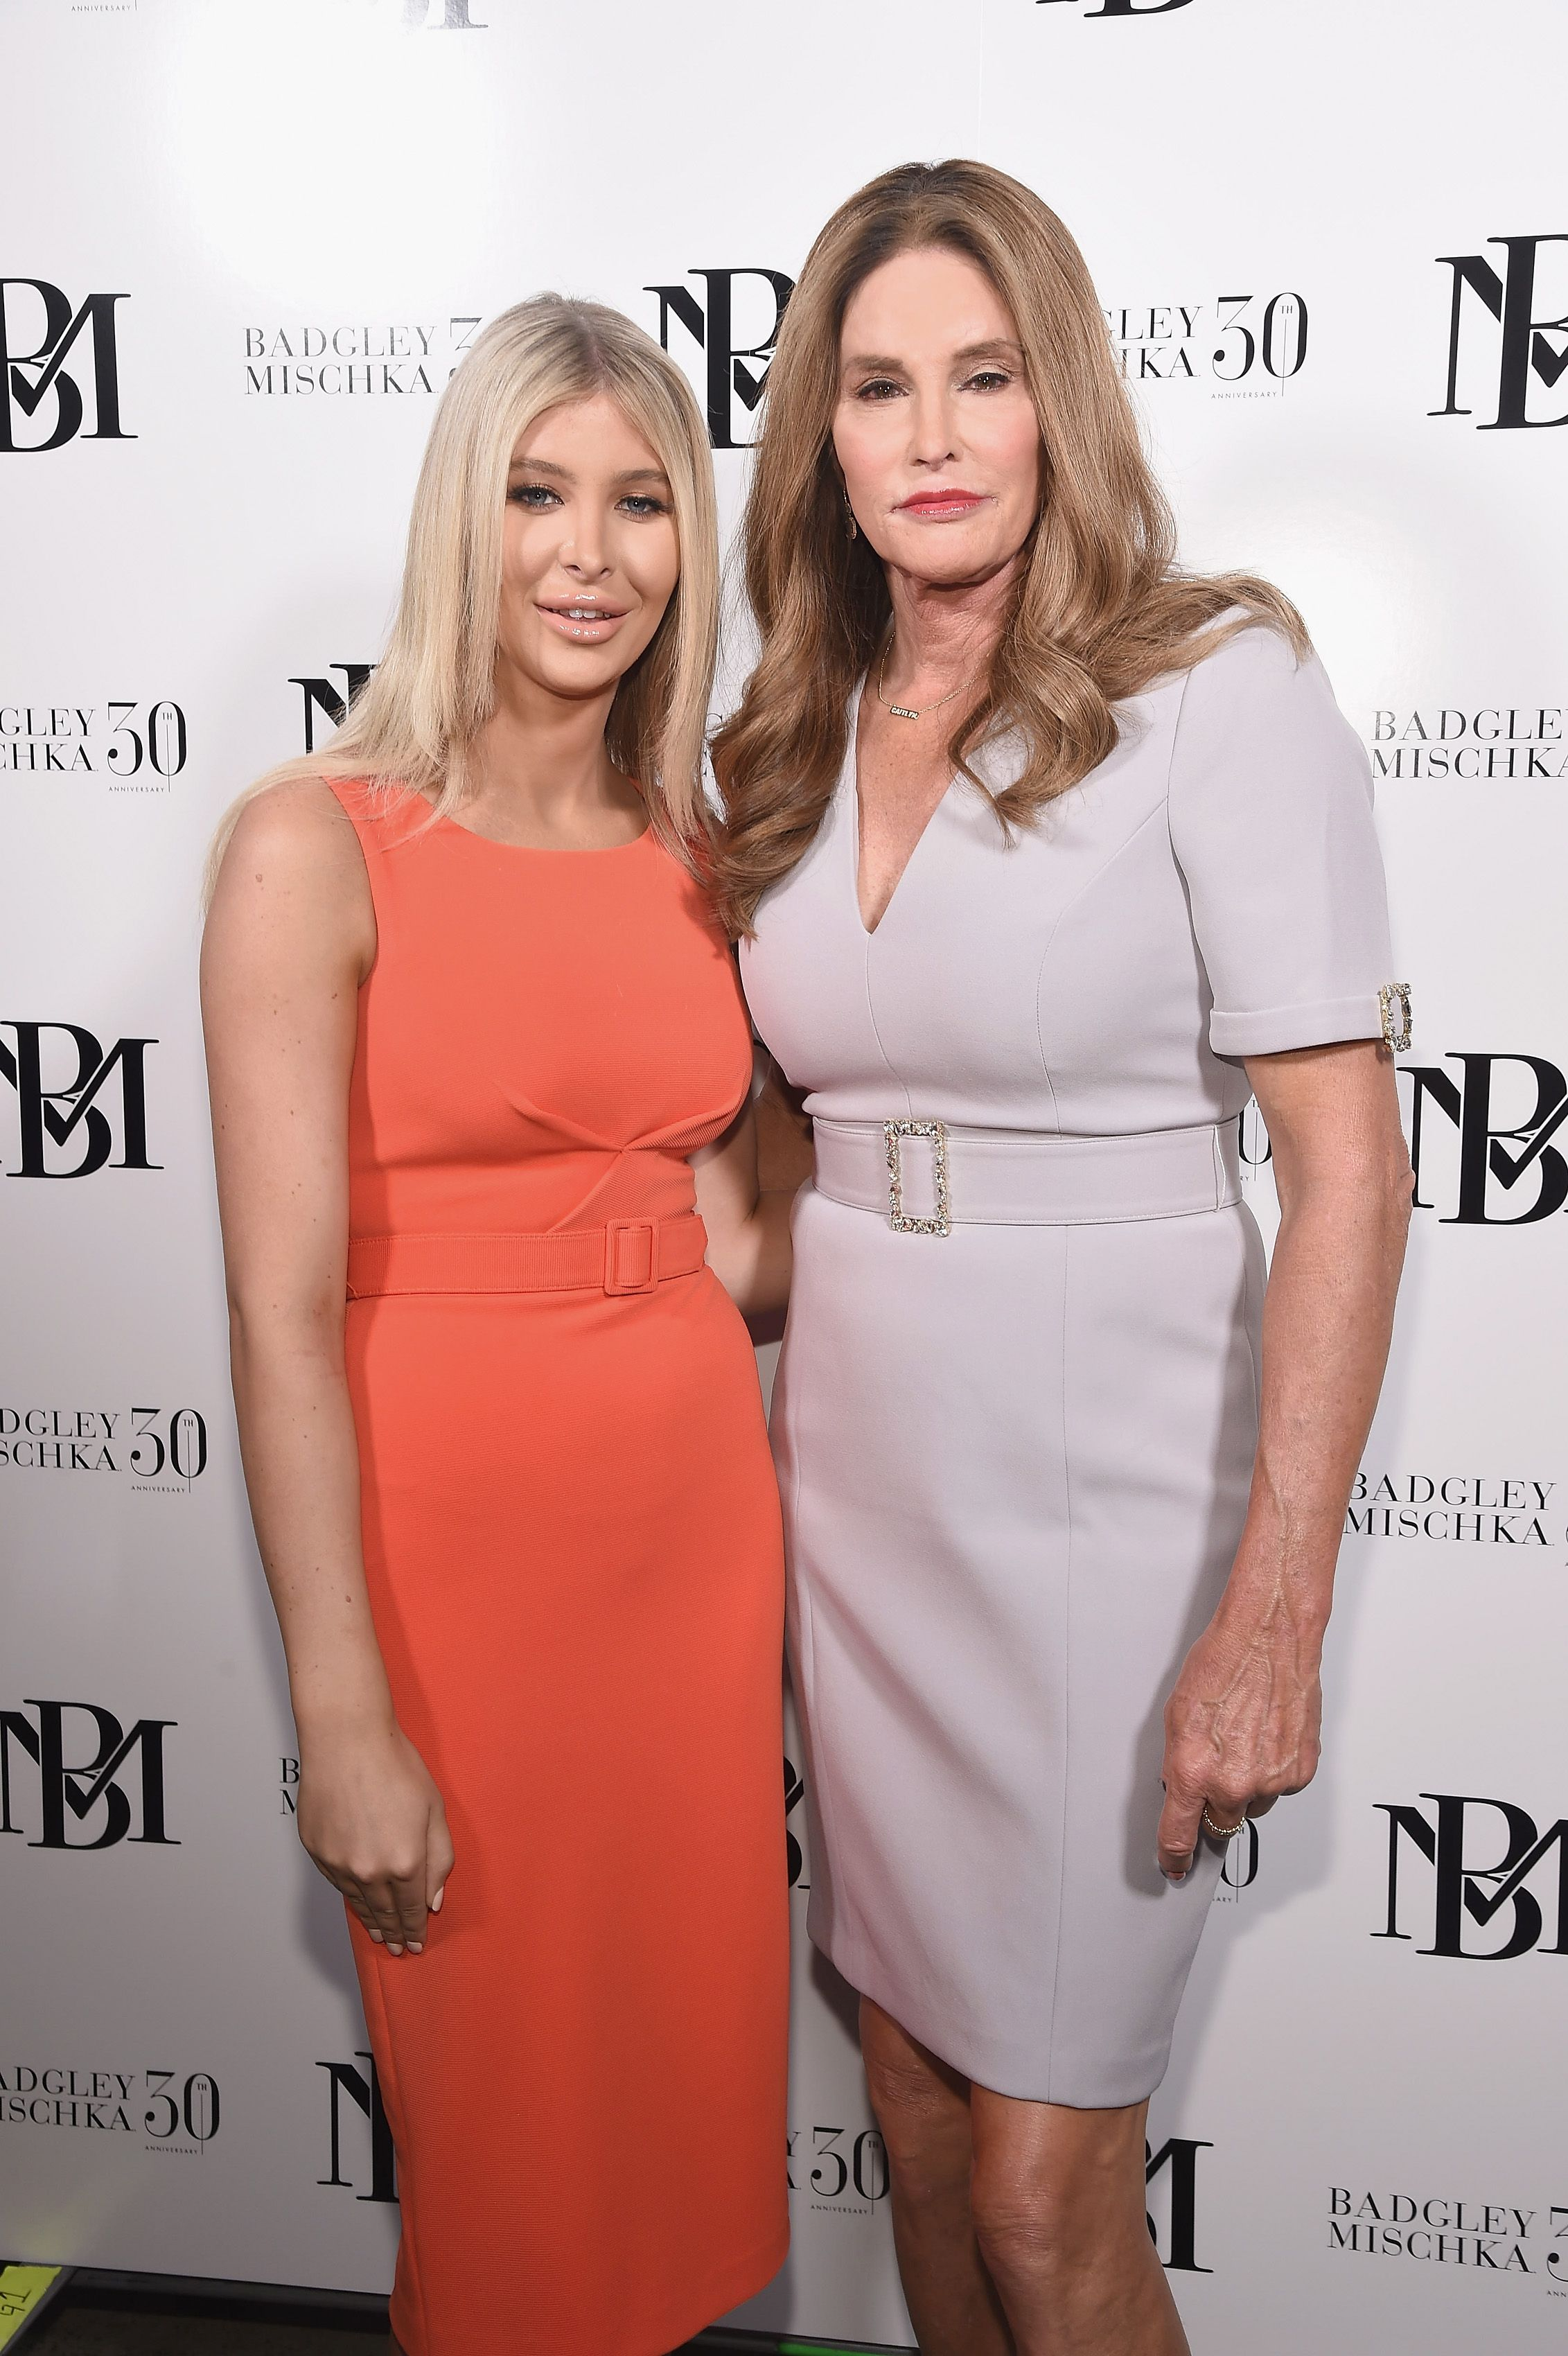 sophia hutchins speaks about her relationship with caitlyn jenner